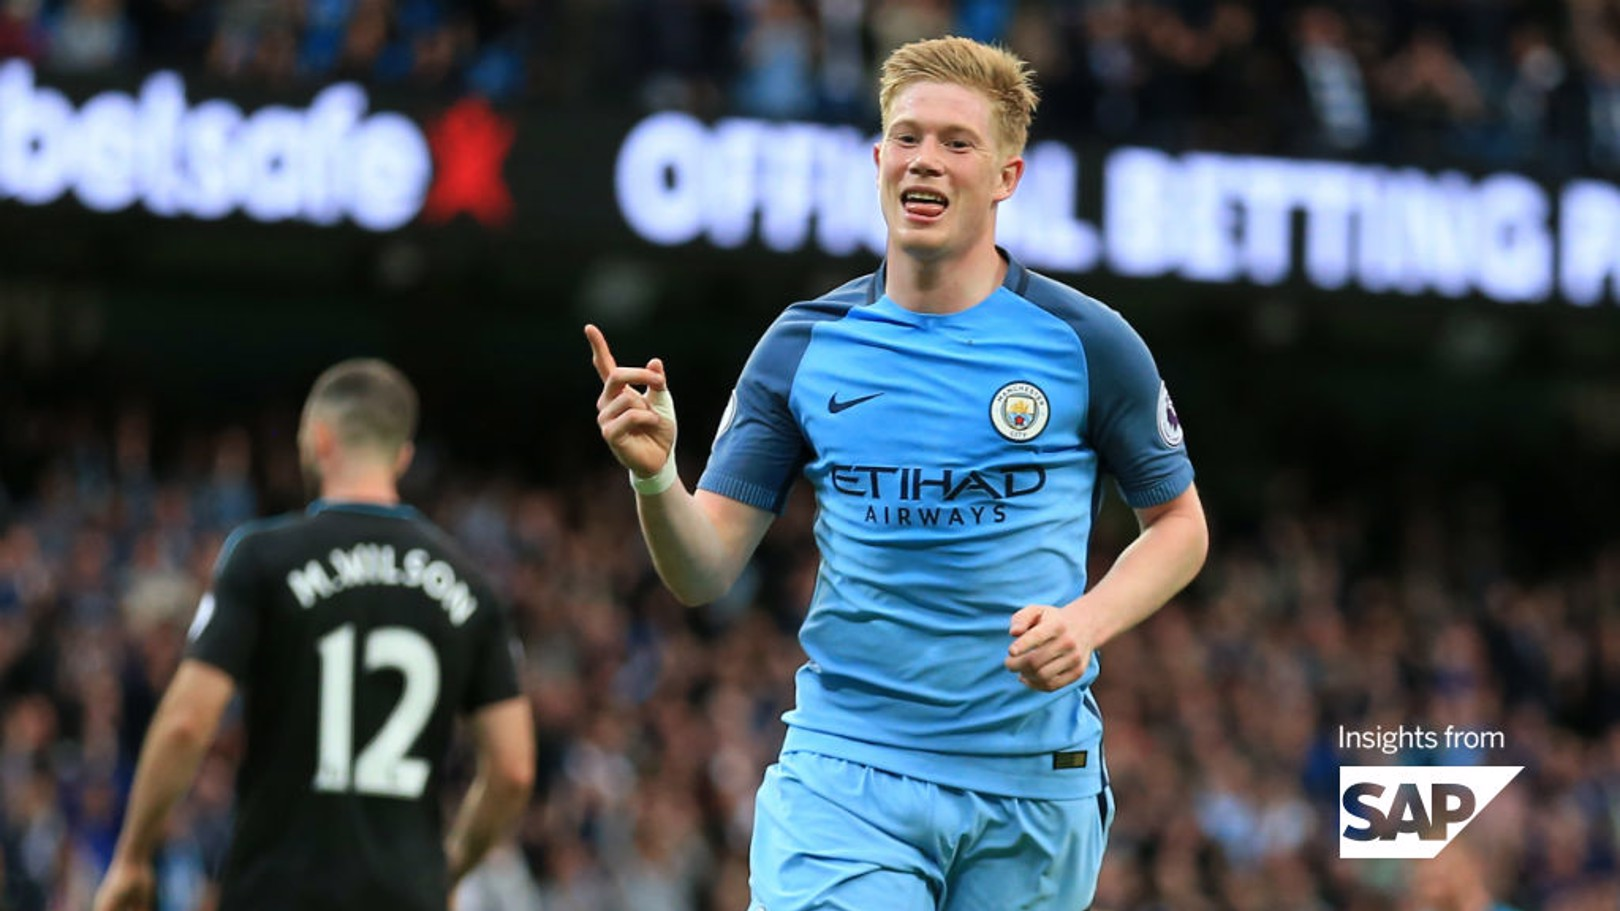 IN FOCUS: De Bruyne's 2016/17 stats make for good reading